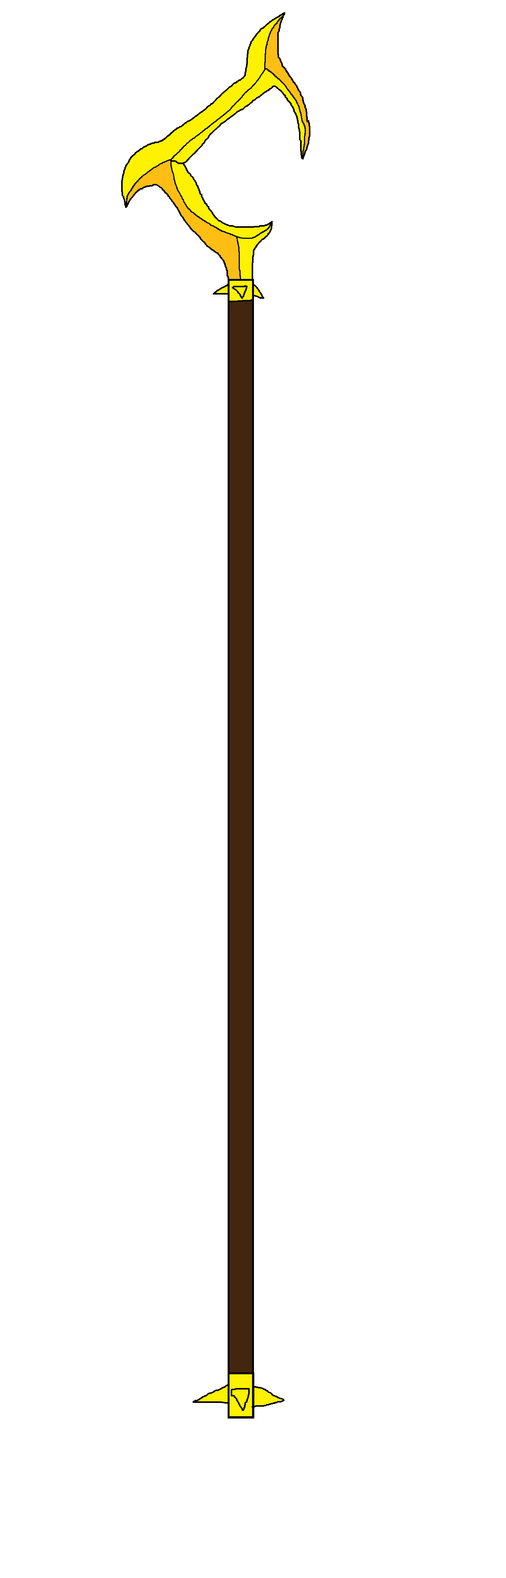 Sly's Cane In Werewolf Modified by Perithefox10